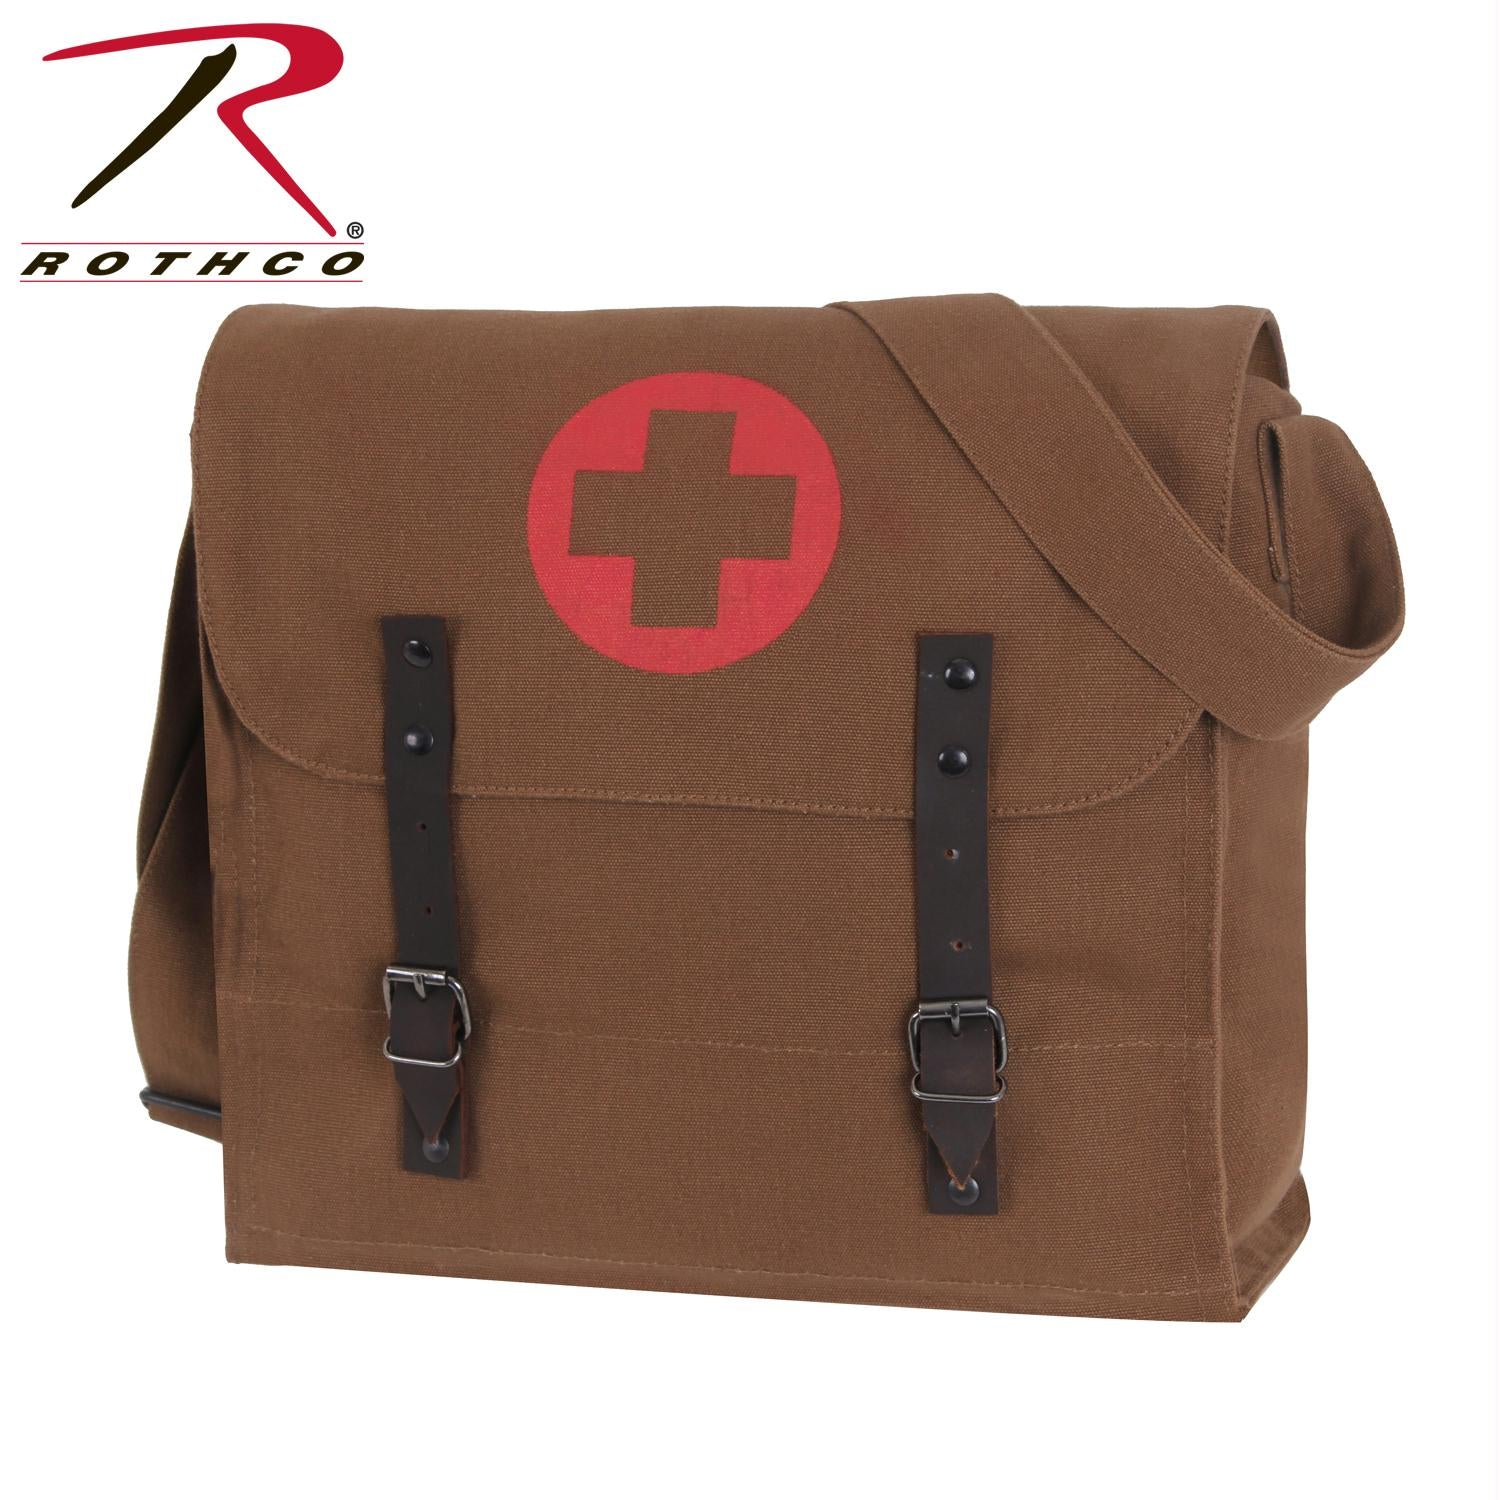 Rothco Vintage Medic Bag w/ Cross - Brown